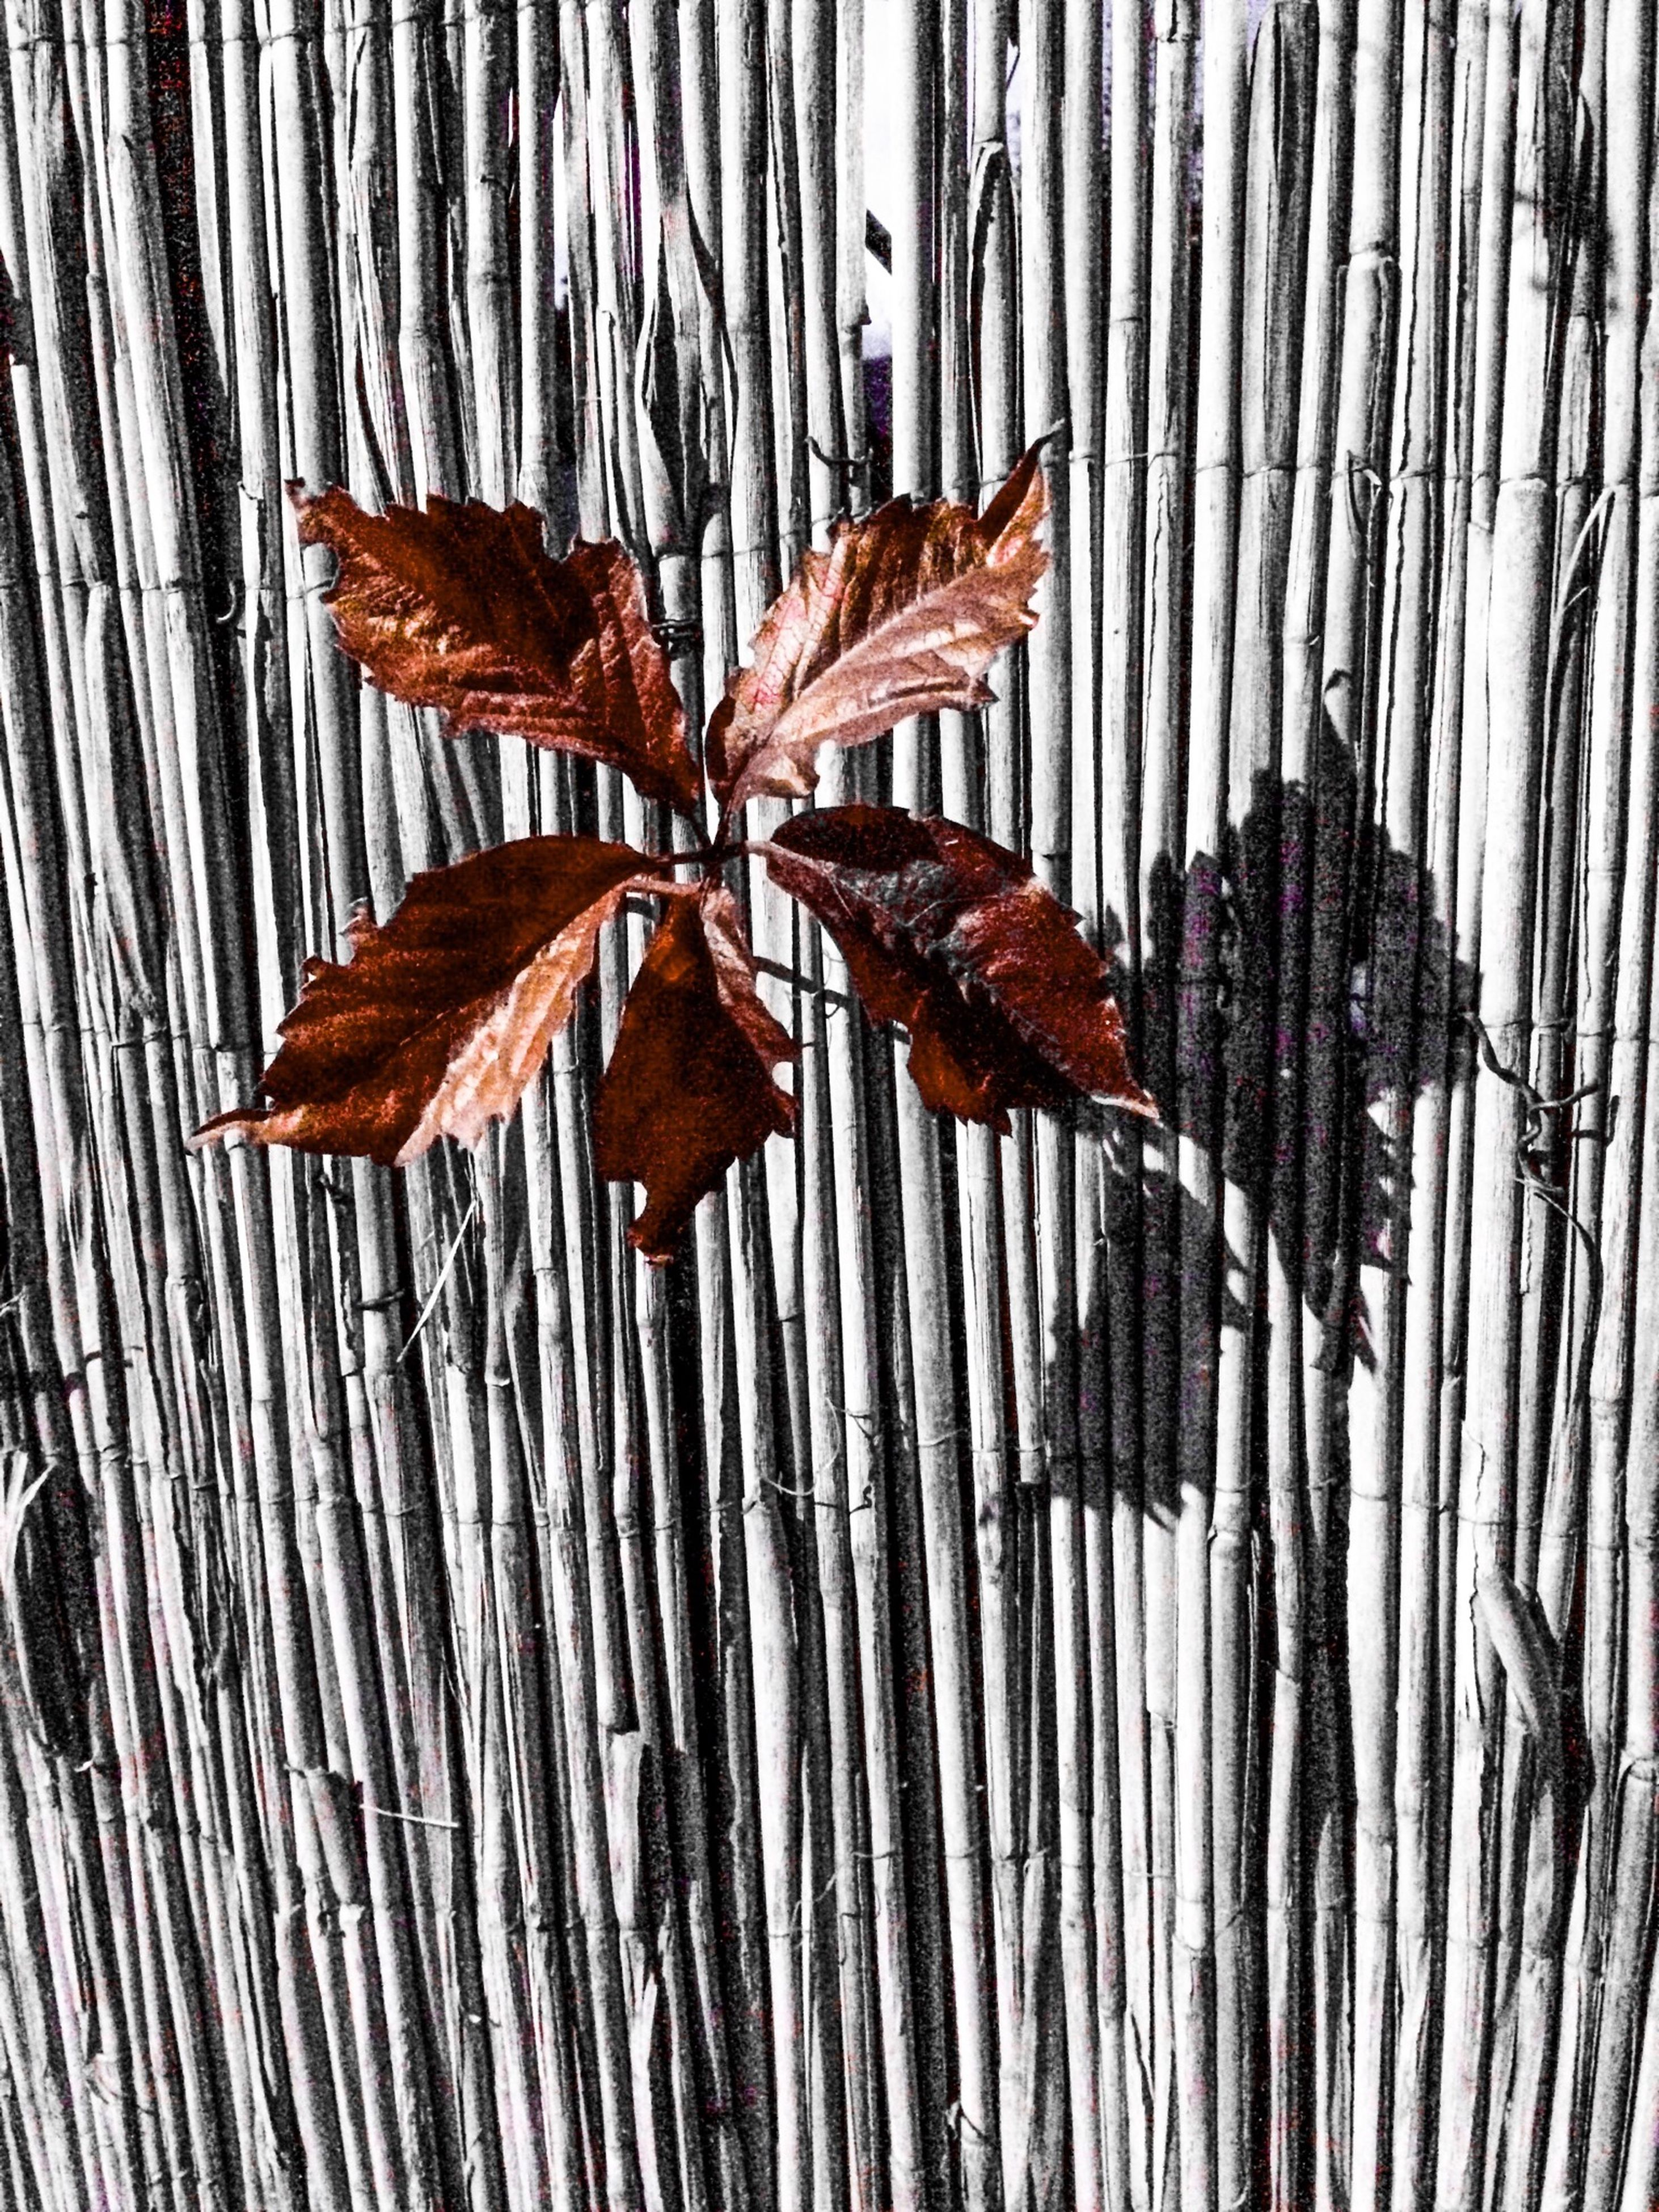 leaf, autumn, dry, change, close-up, season, leaves, wall - building feature, wood - material, aging process, textured, pattern, leaf vein, no people, day, nature, maple leaf, hanging, natural pattern, full frame